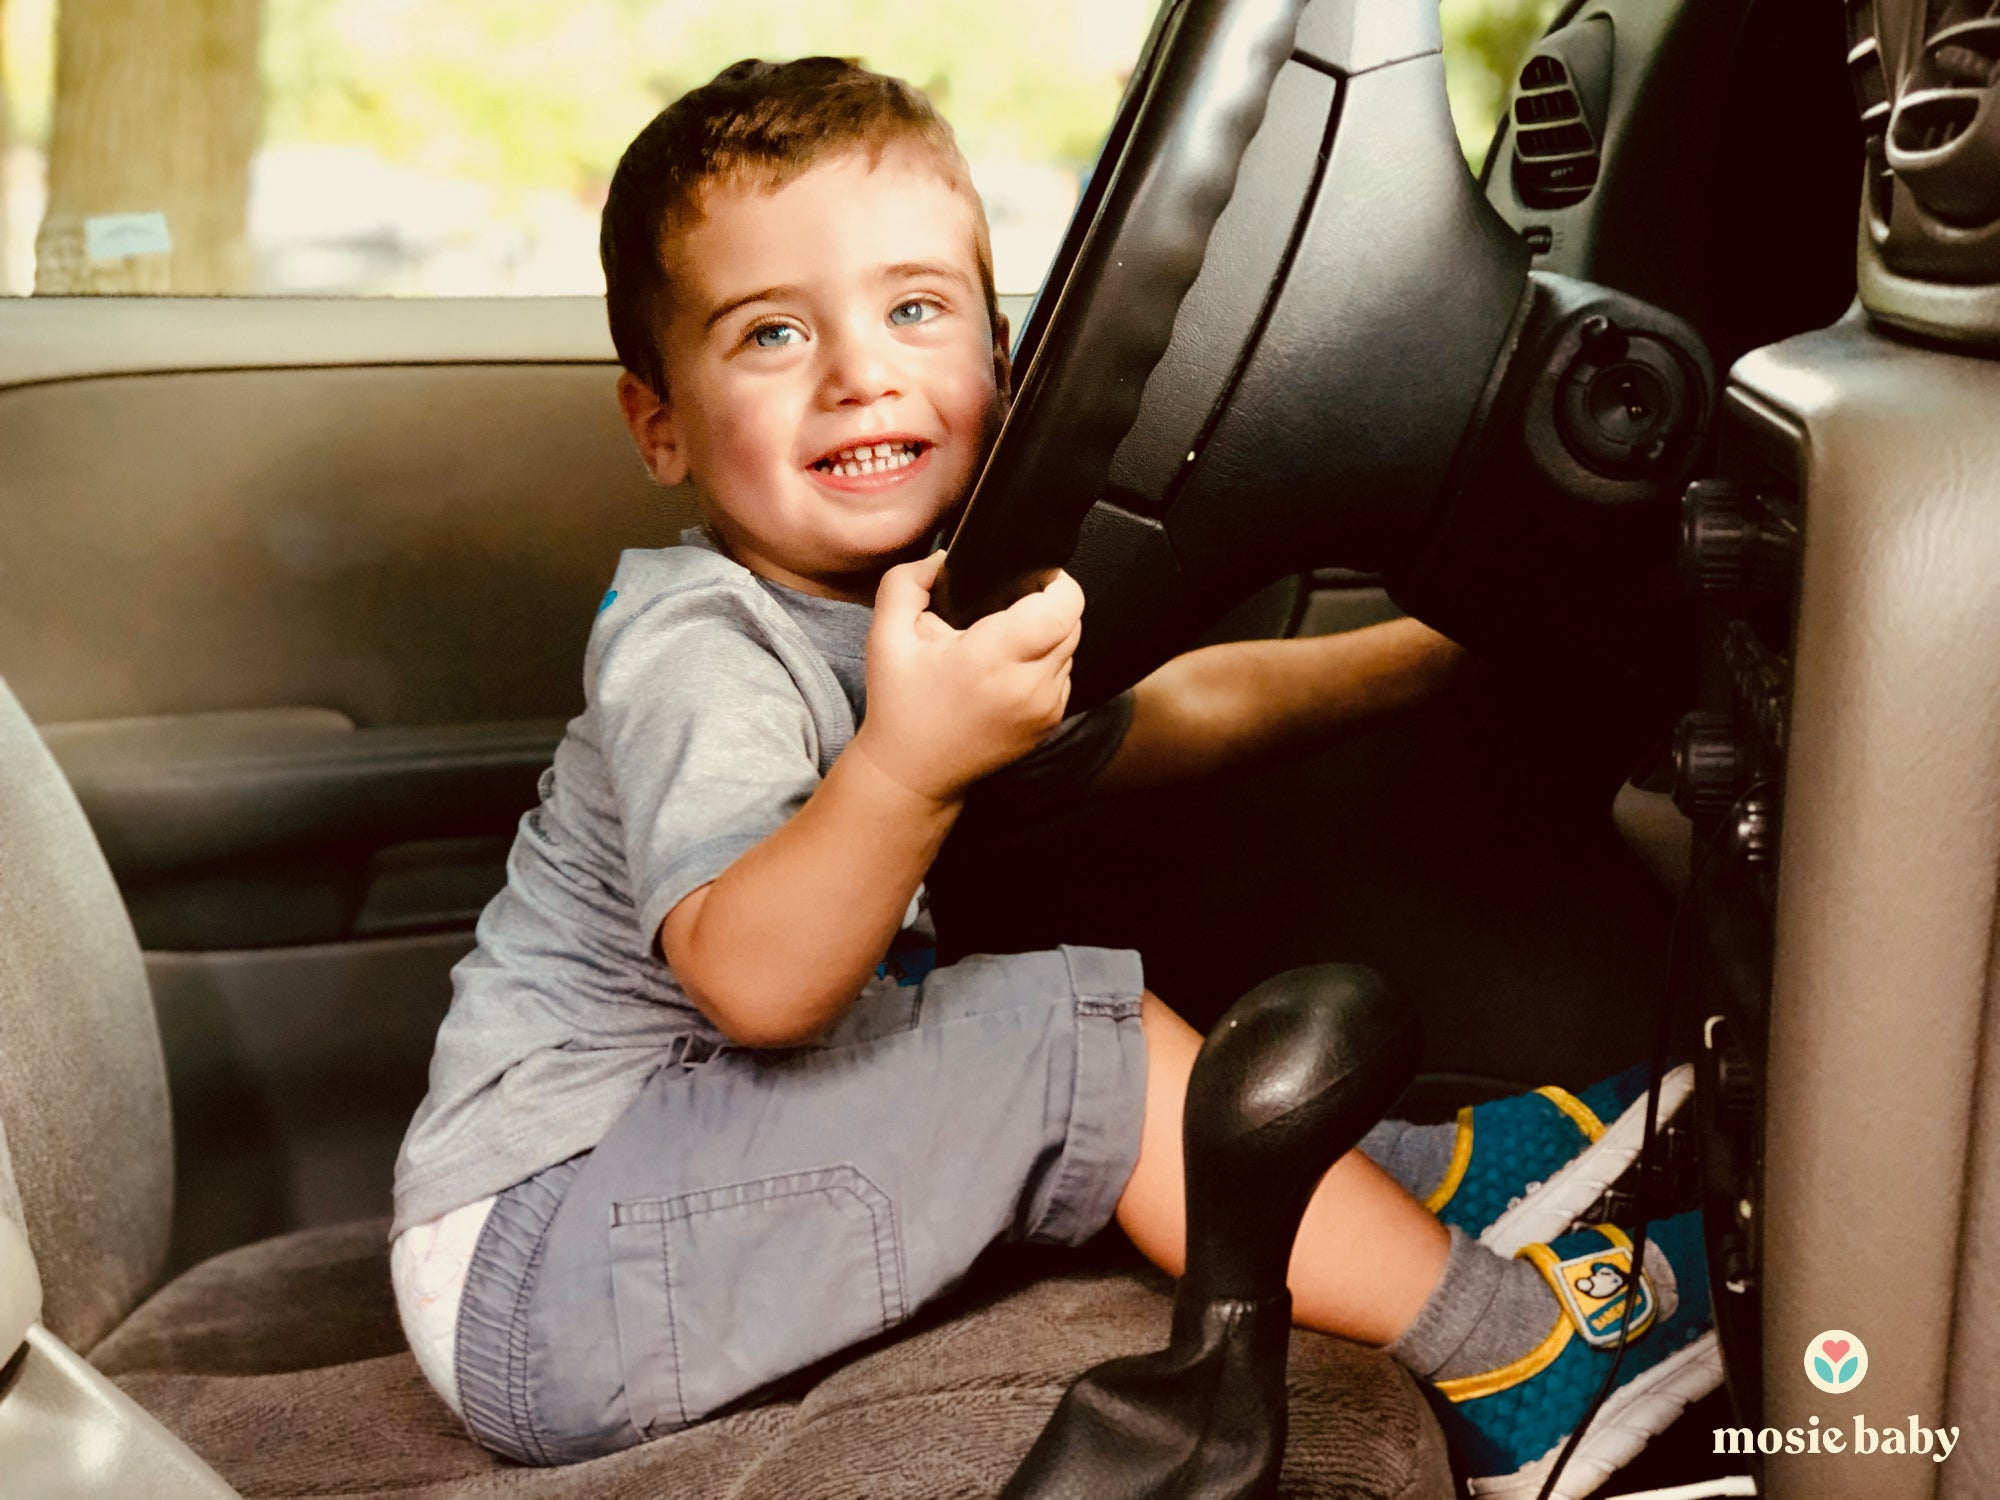 The first mosie baby Frank pretending to drive a car